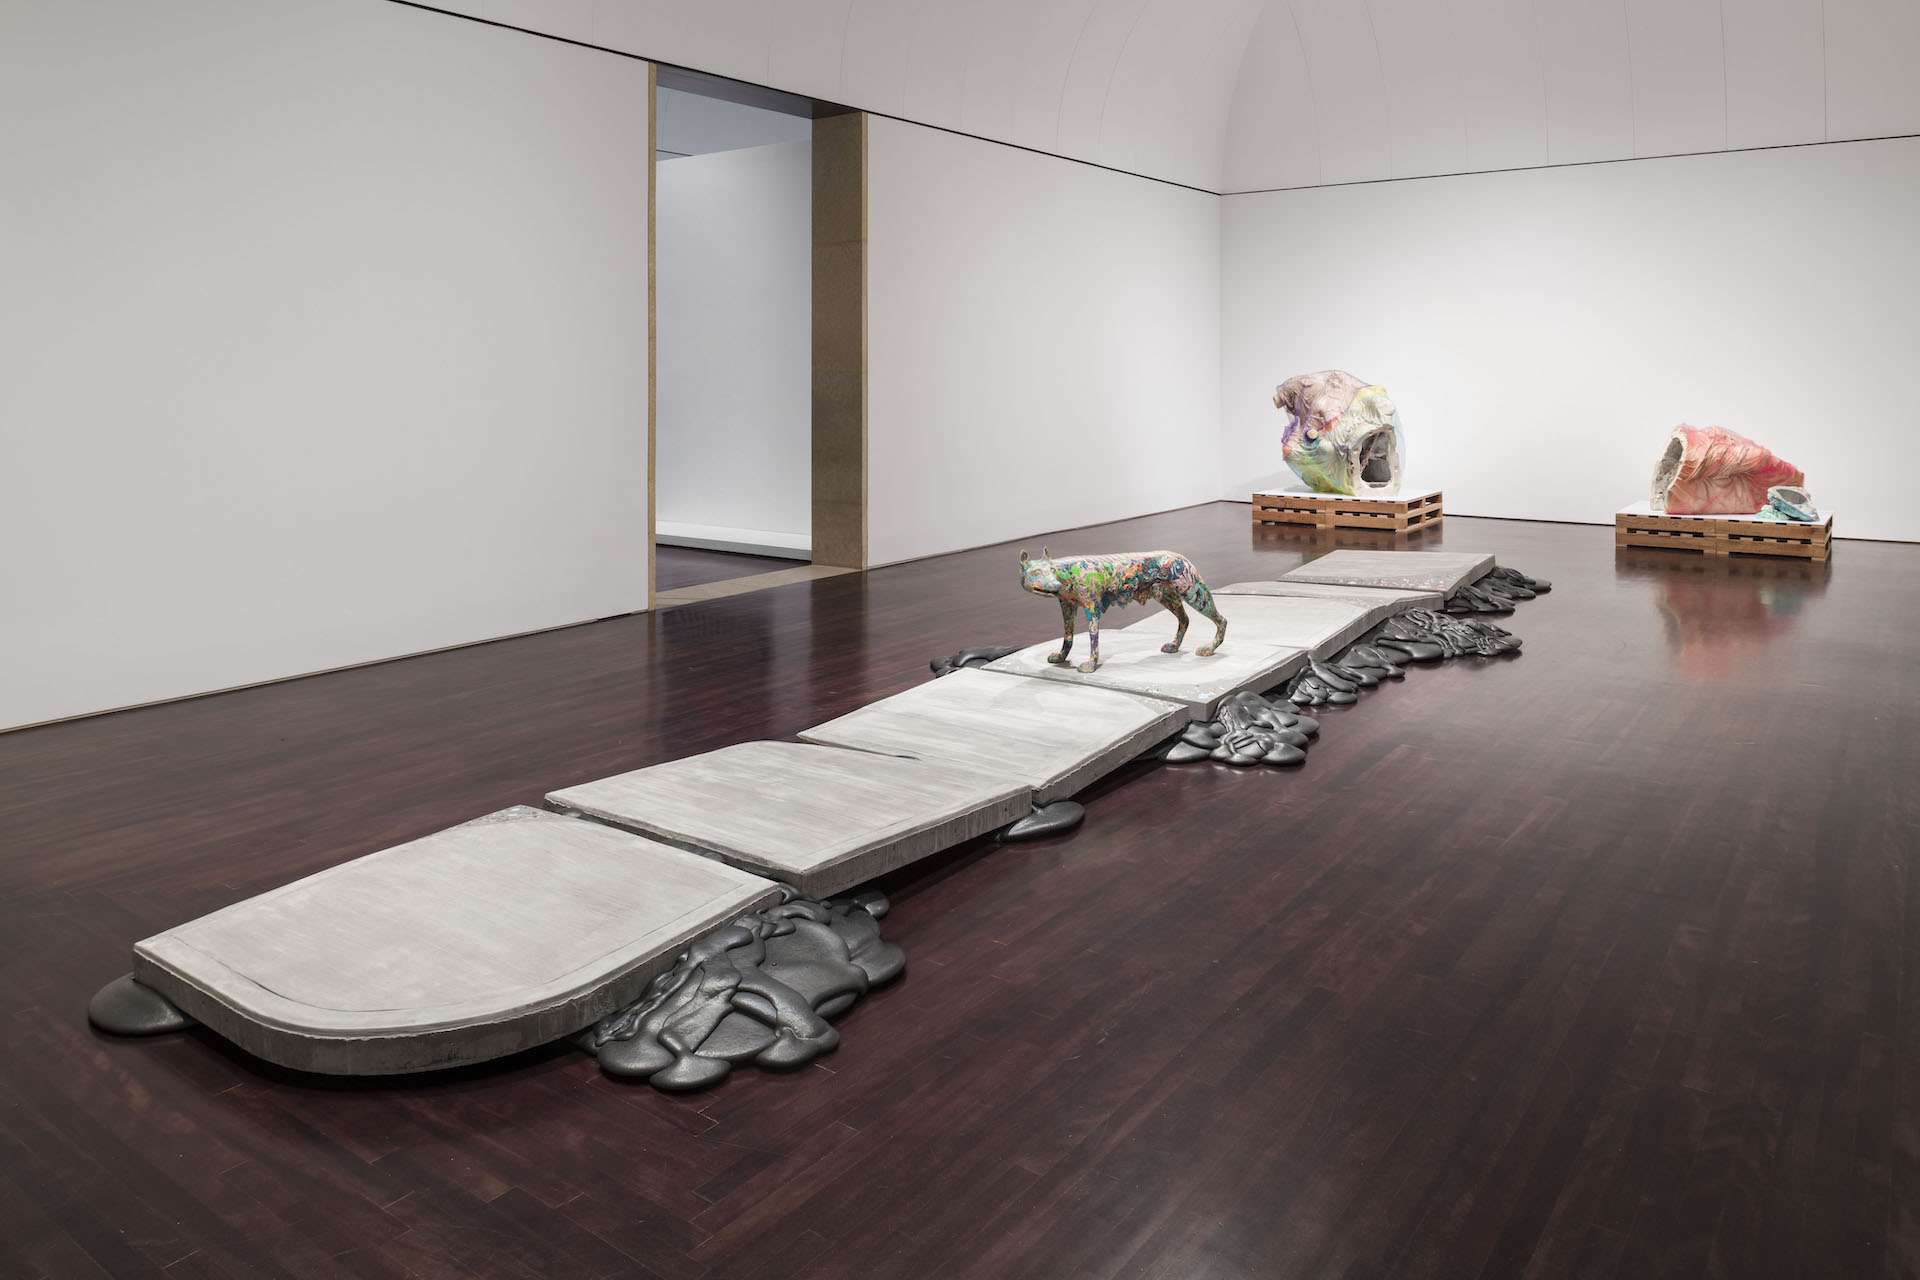 Installation view of Lily Cox-Richard: She-Wolf + Lower Figs. at the Blanton Museum of Art. Photo by Colin Doyle.